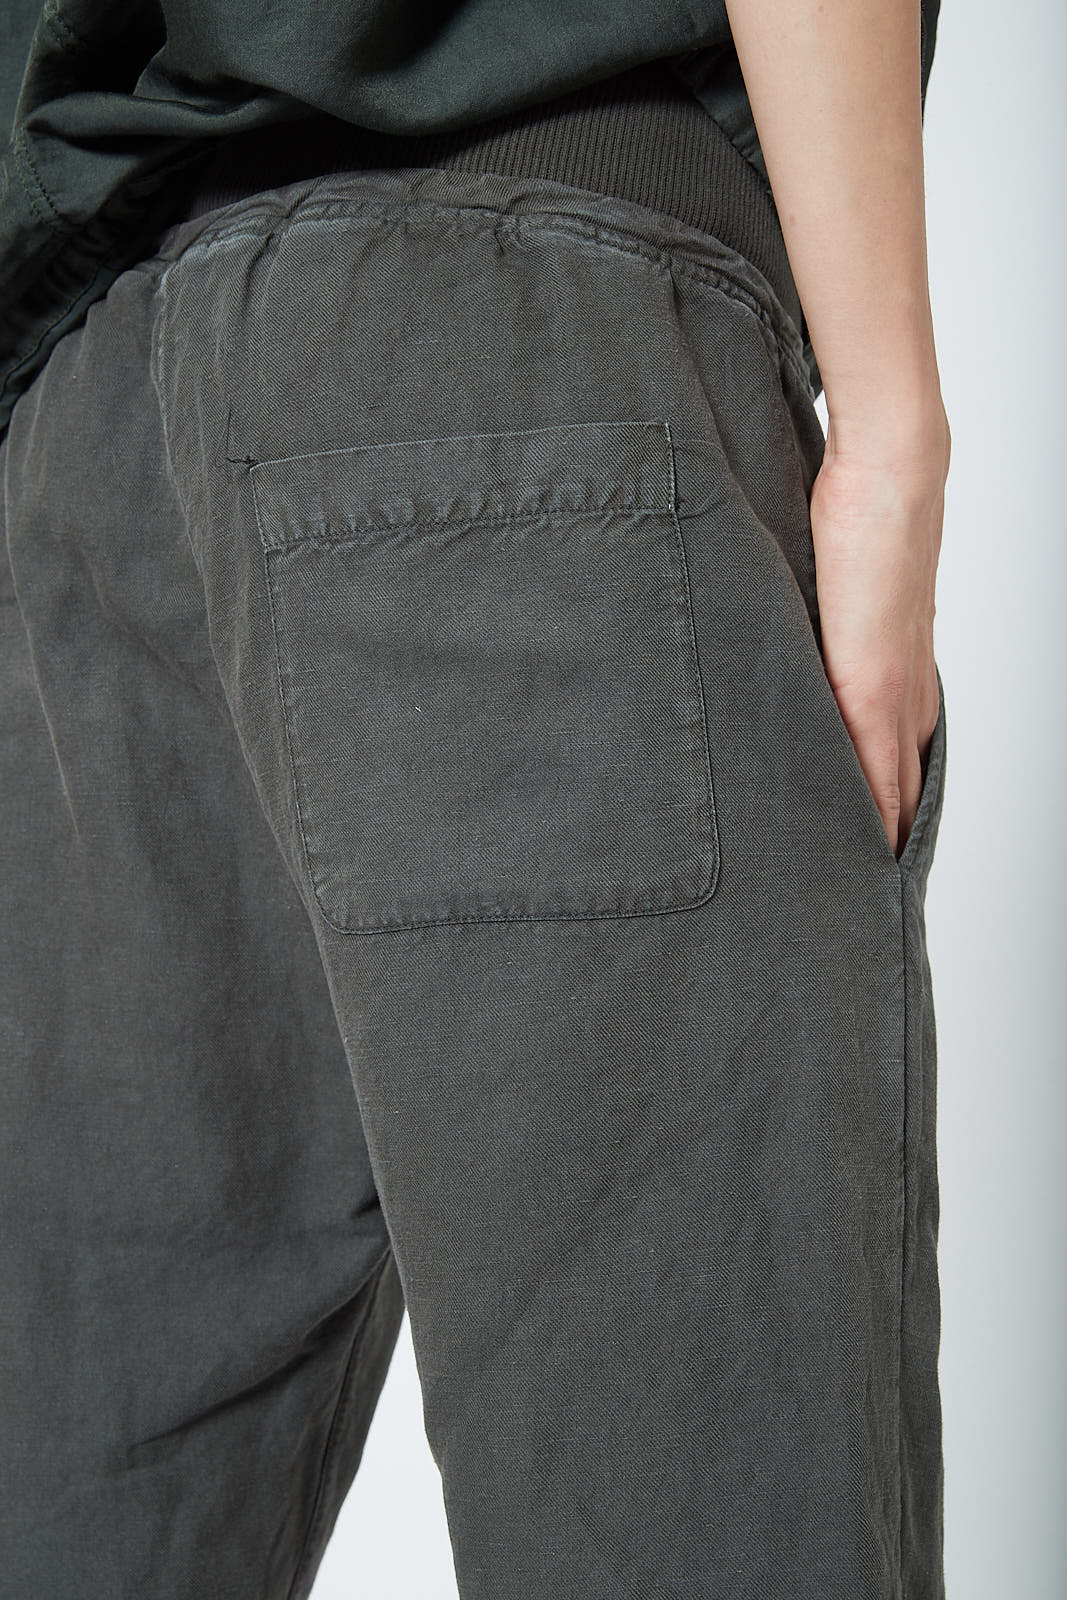 KES Drop Crotch Pants with Rib Twill - FW19